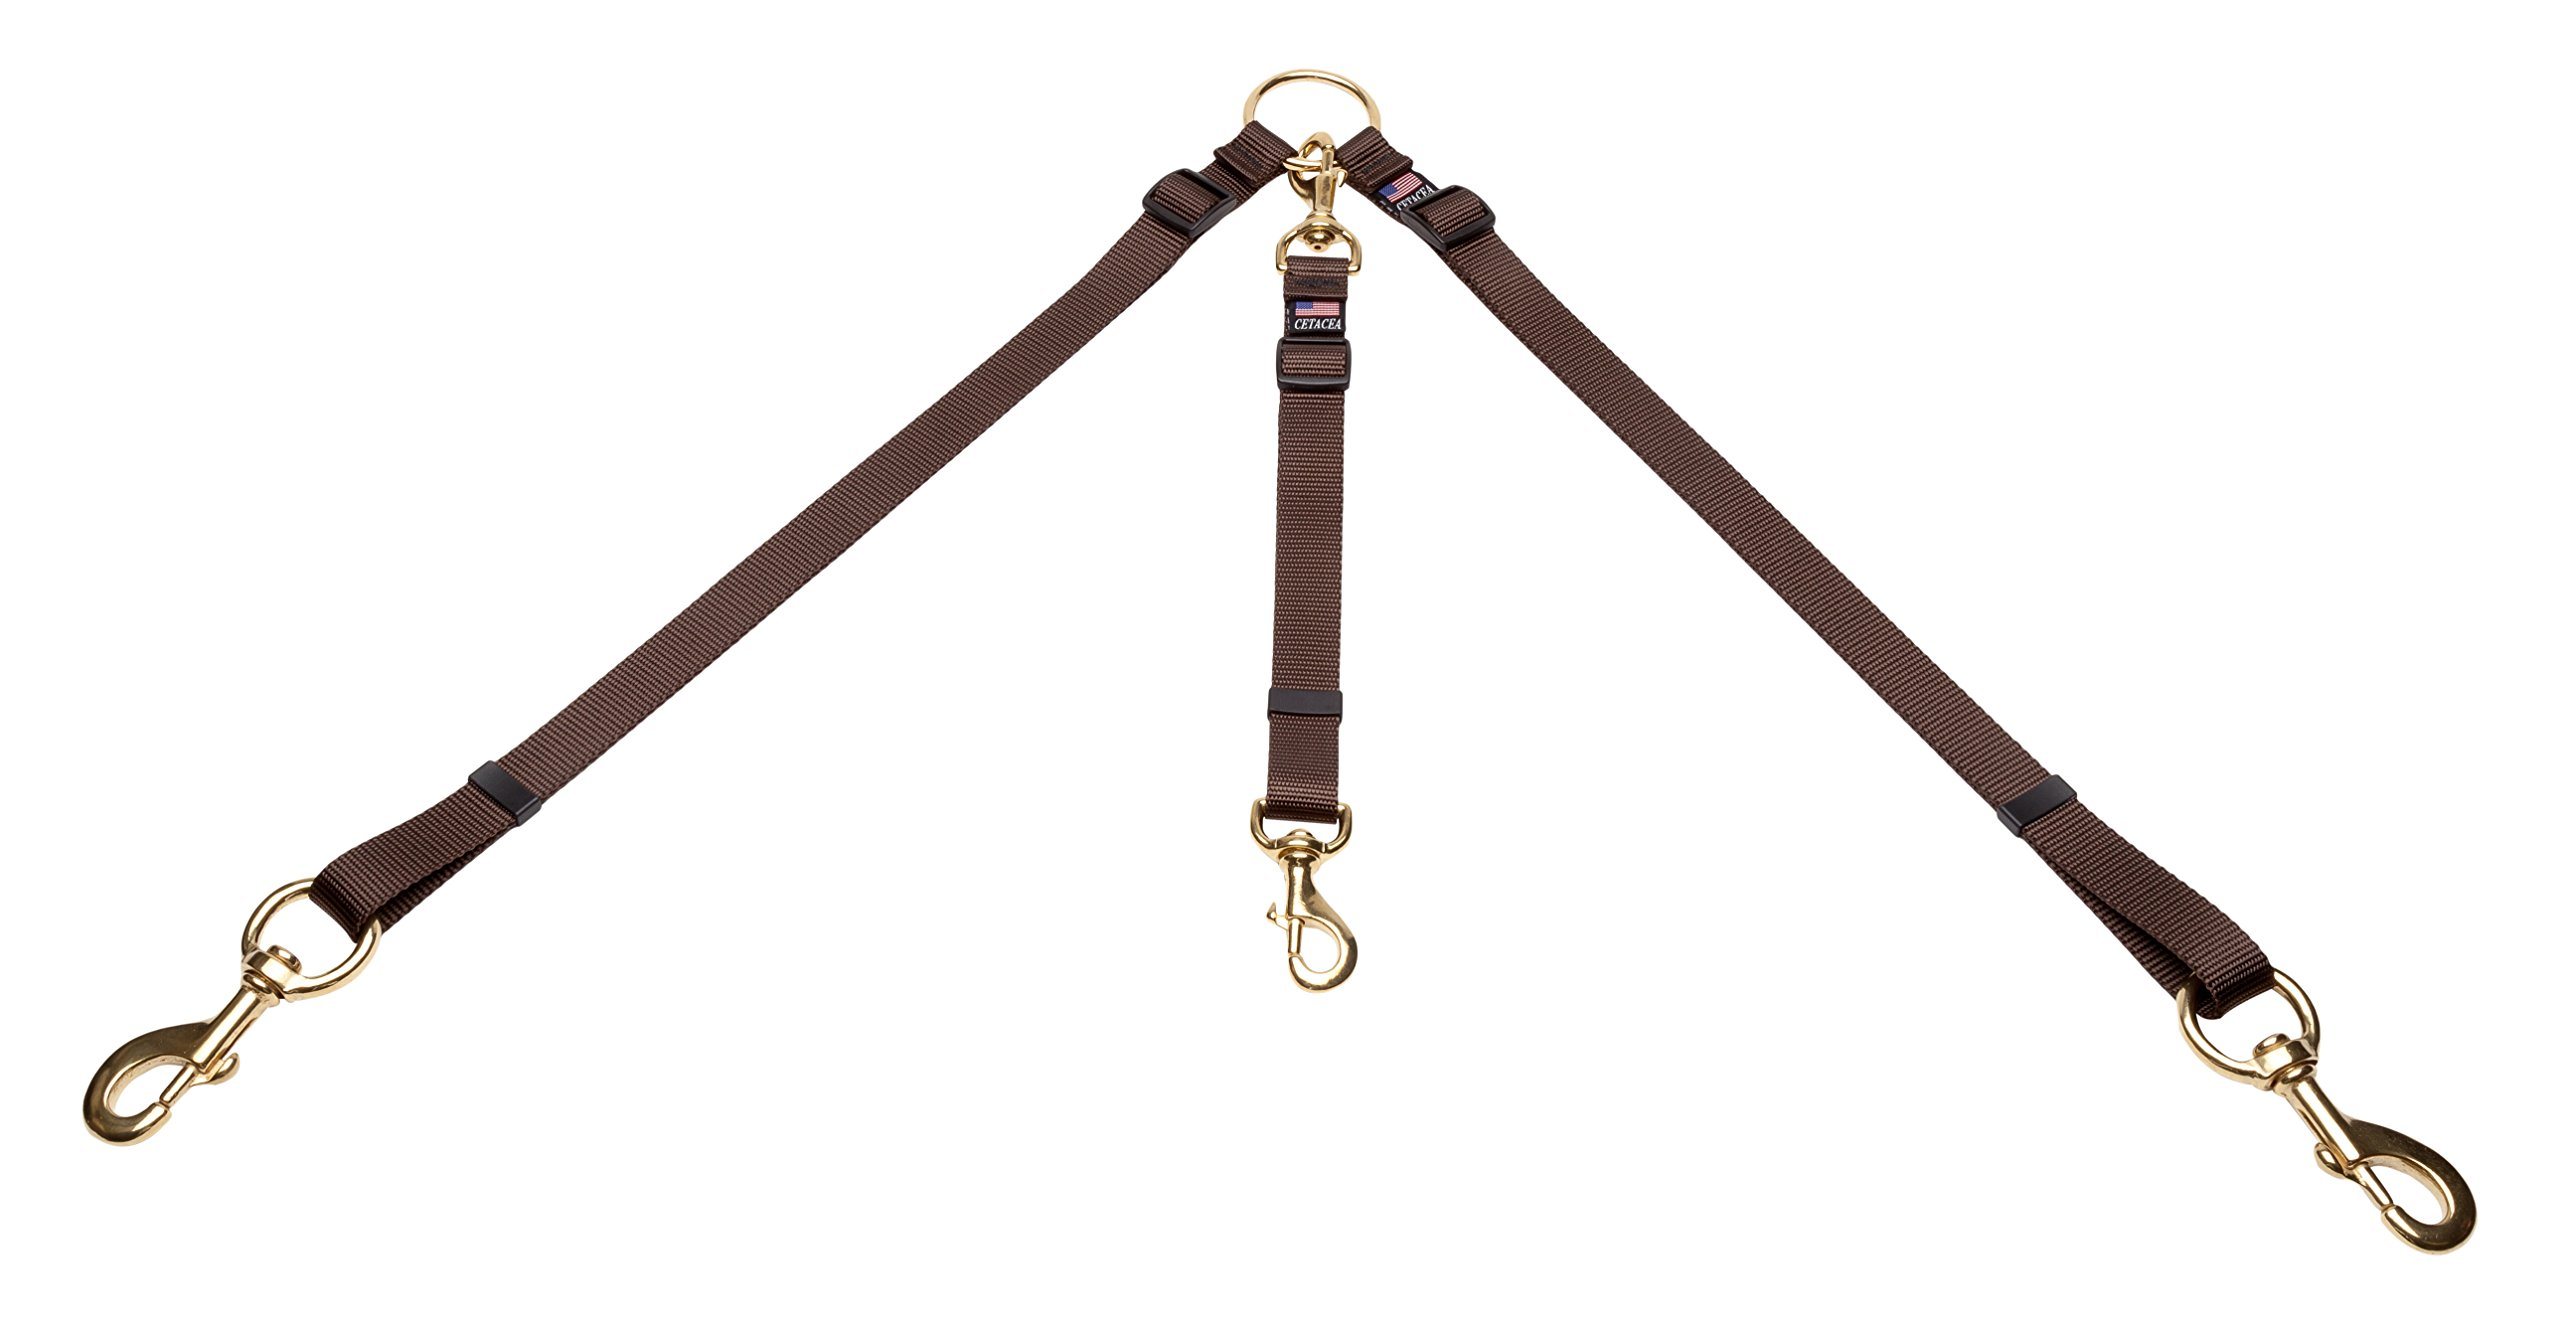 Cetacea Adjustable Truck Bed Tether, One Size, Brown